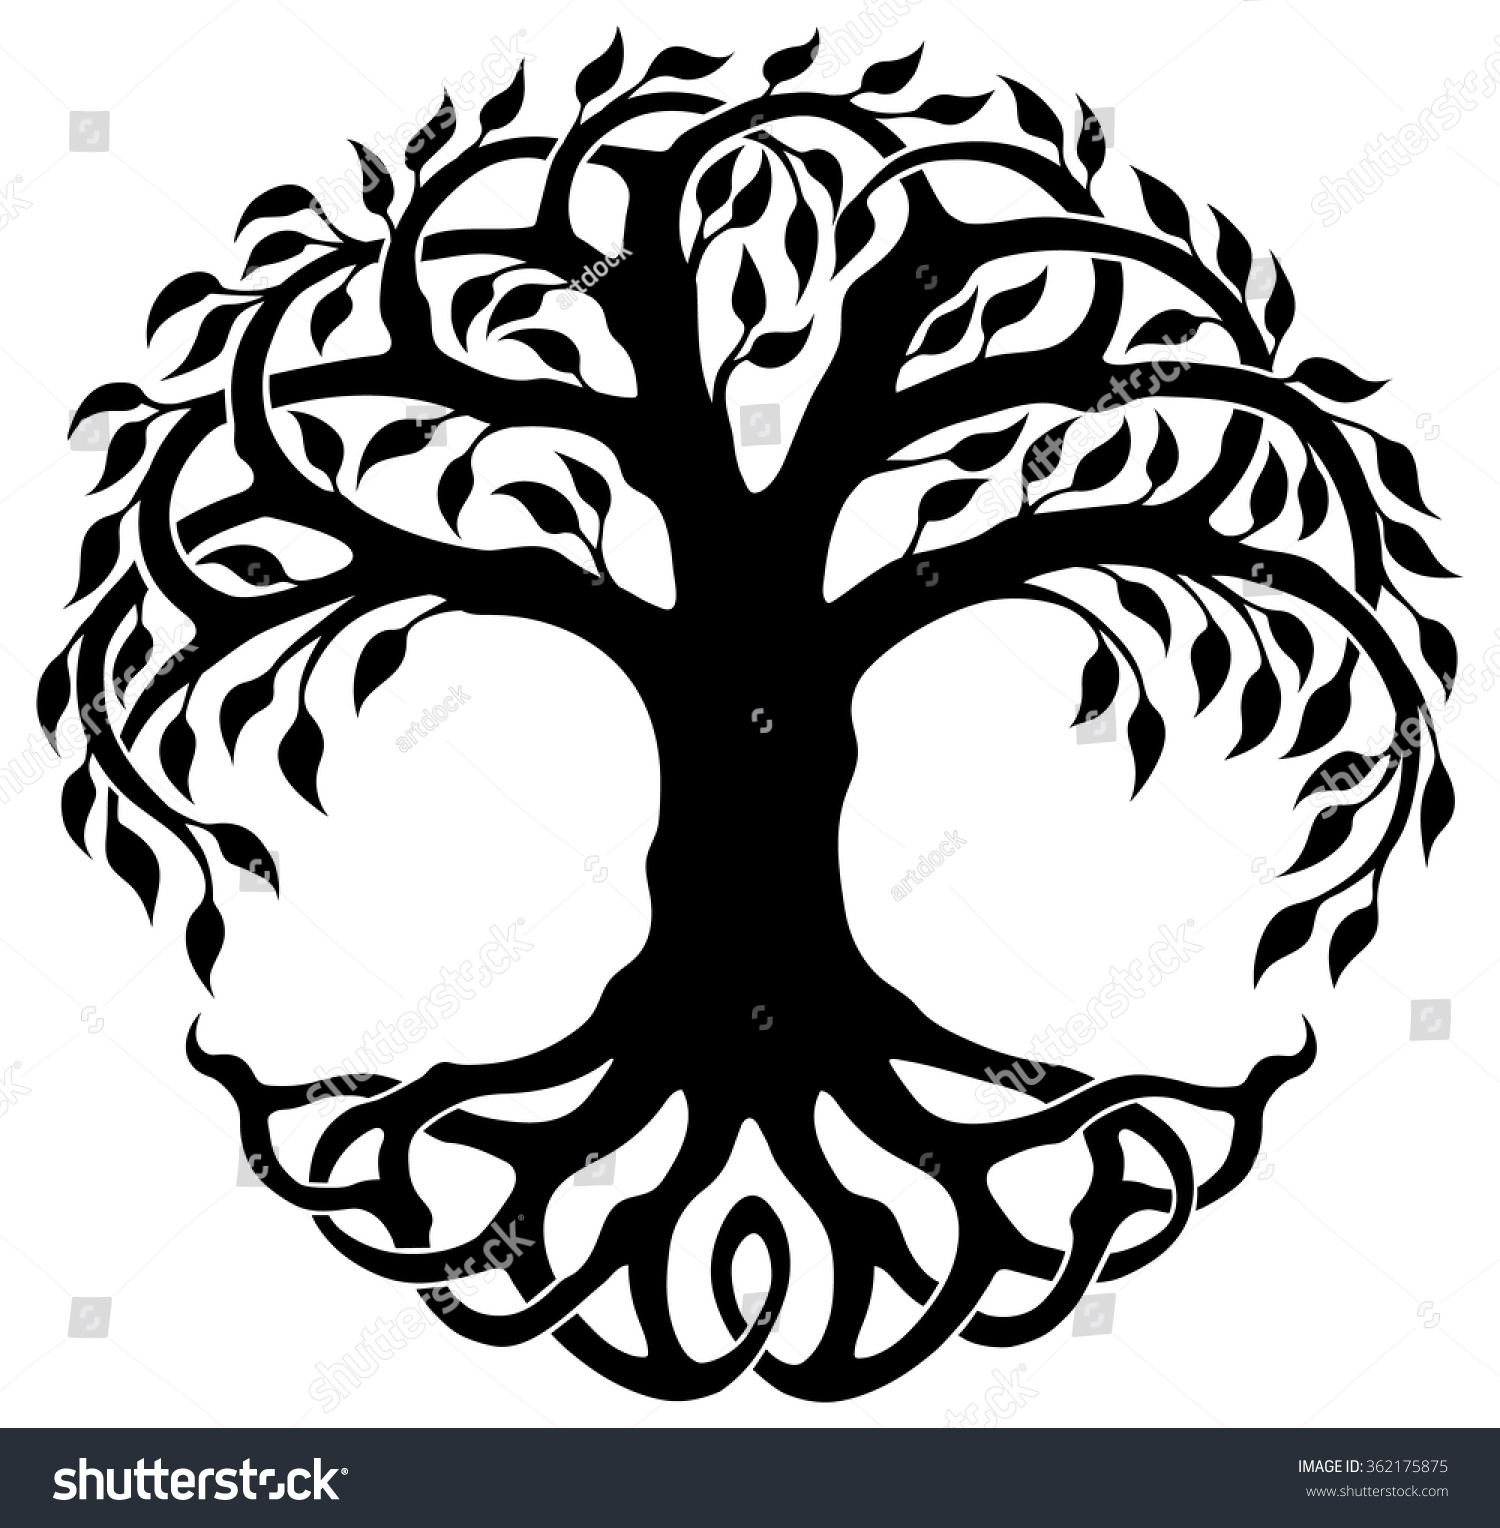 vector ornament decorative celtic tree life stock vector 2018 rh shutterstock com tree of life vector download tree of life vector art